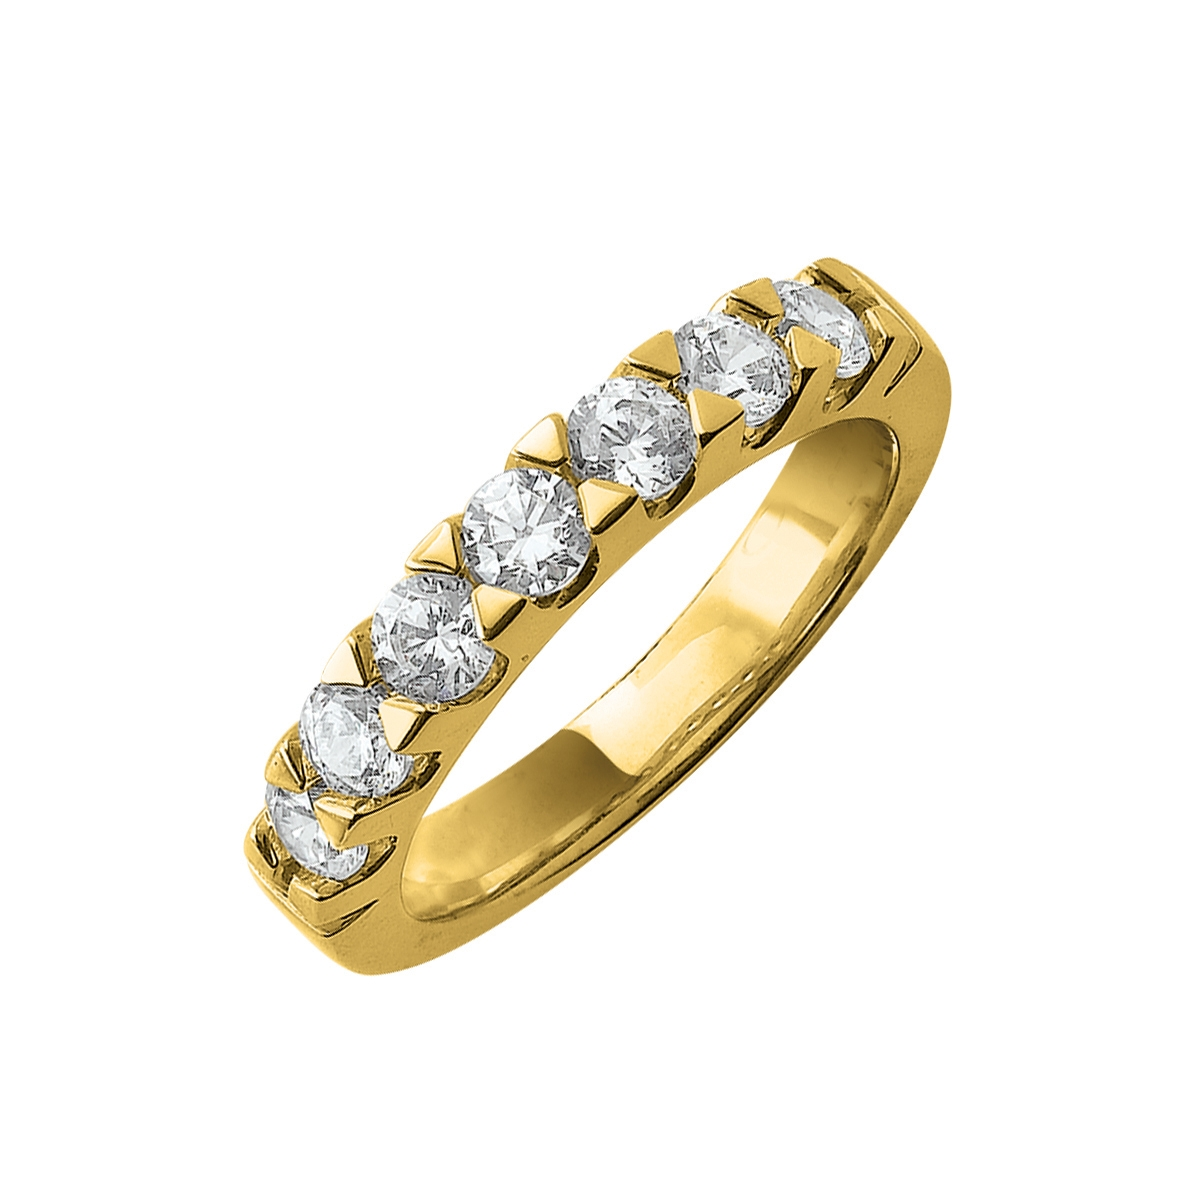 Alliance demi-tour serti griffes or jaune - Diamants synthétiques 1,00 carat